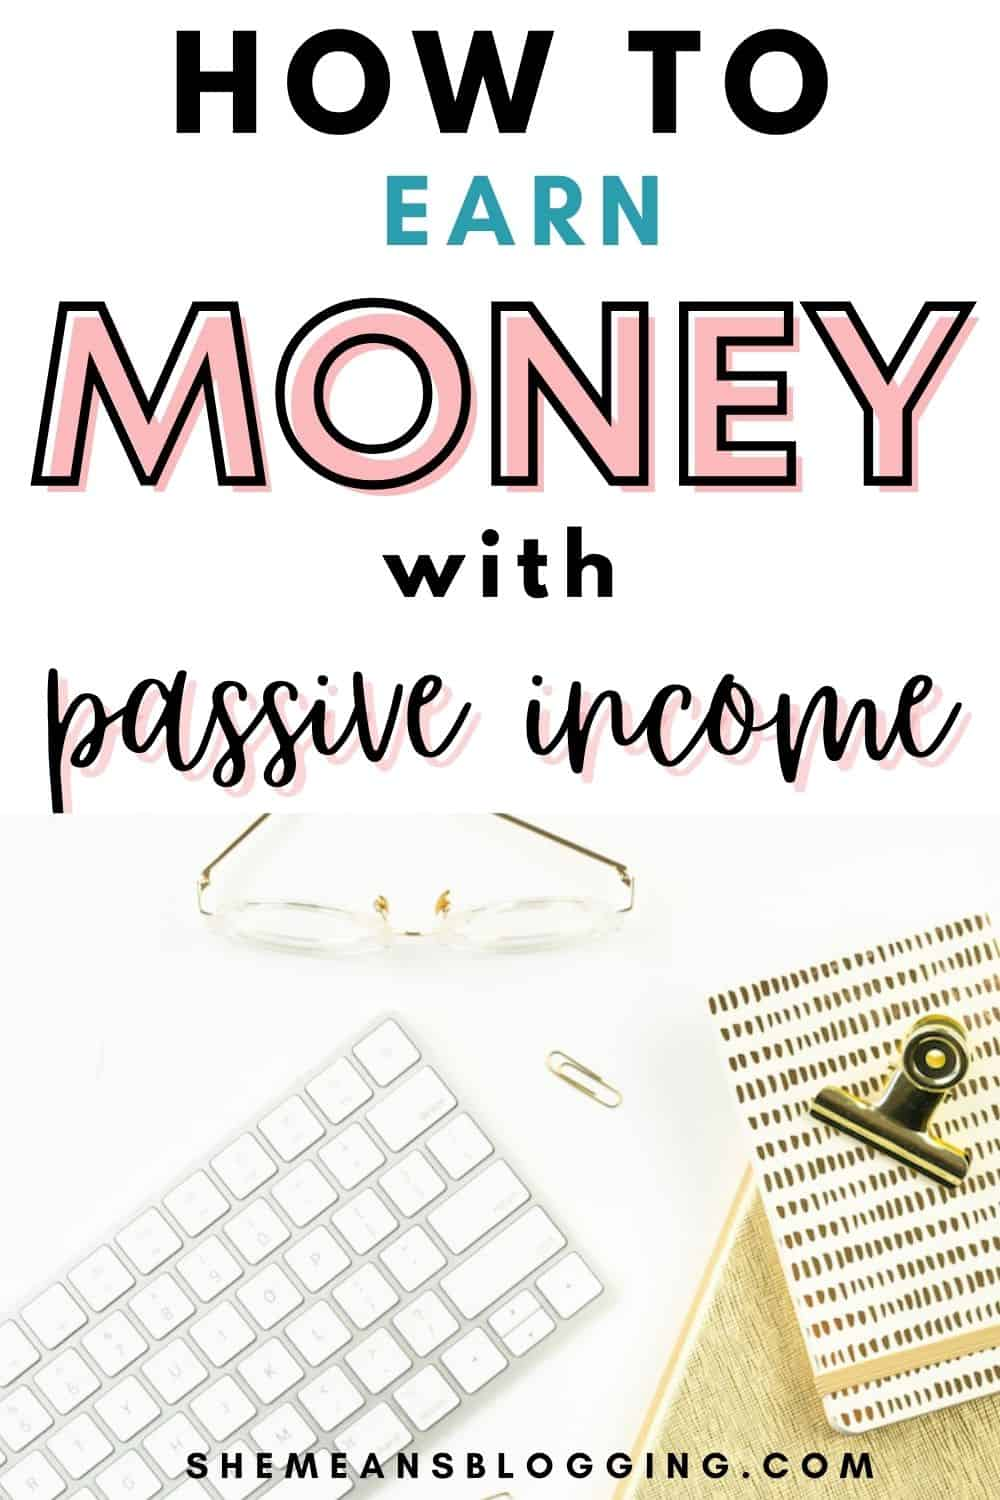 Earning passive income from blogging. How to make money from passive income? Check out 5 passive income ideas for bloggers and small businesses. Learn how to make money from blogging and grow passive income.